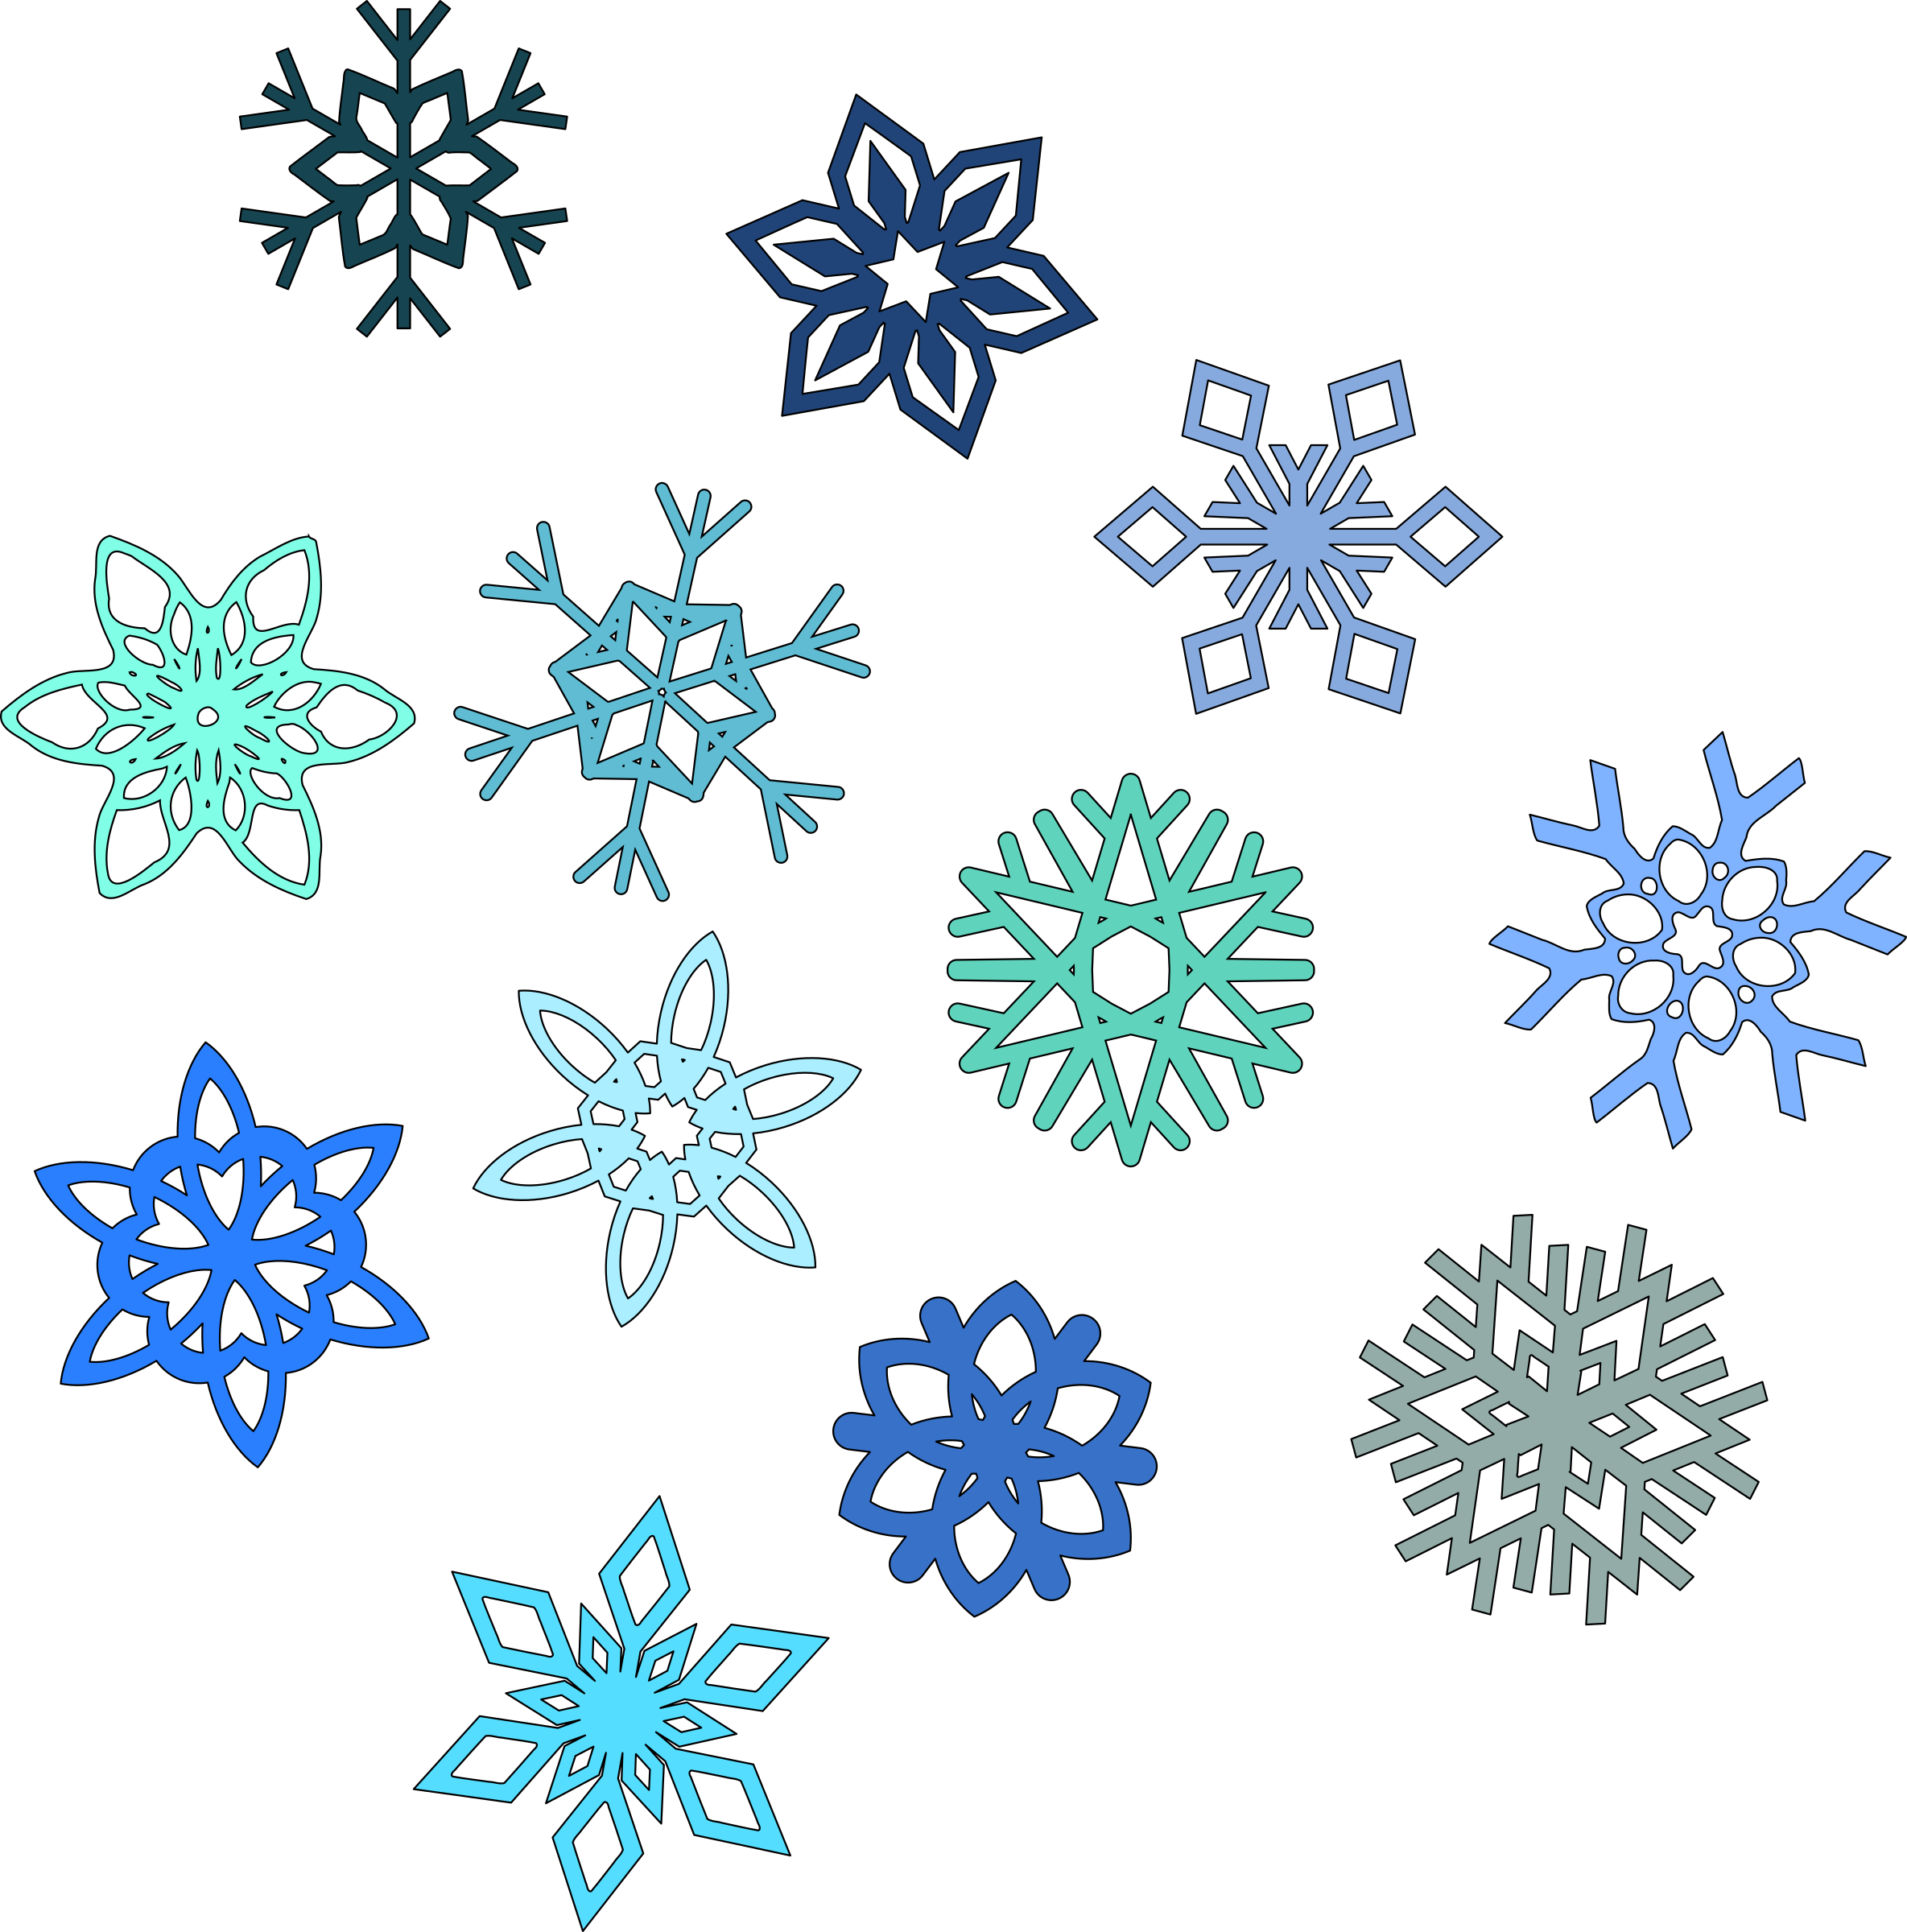 Free snowflake patterns clipart picture free stock Keeping a Snow Journal | Pinterest | Scrapbooking picture free stock